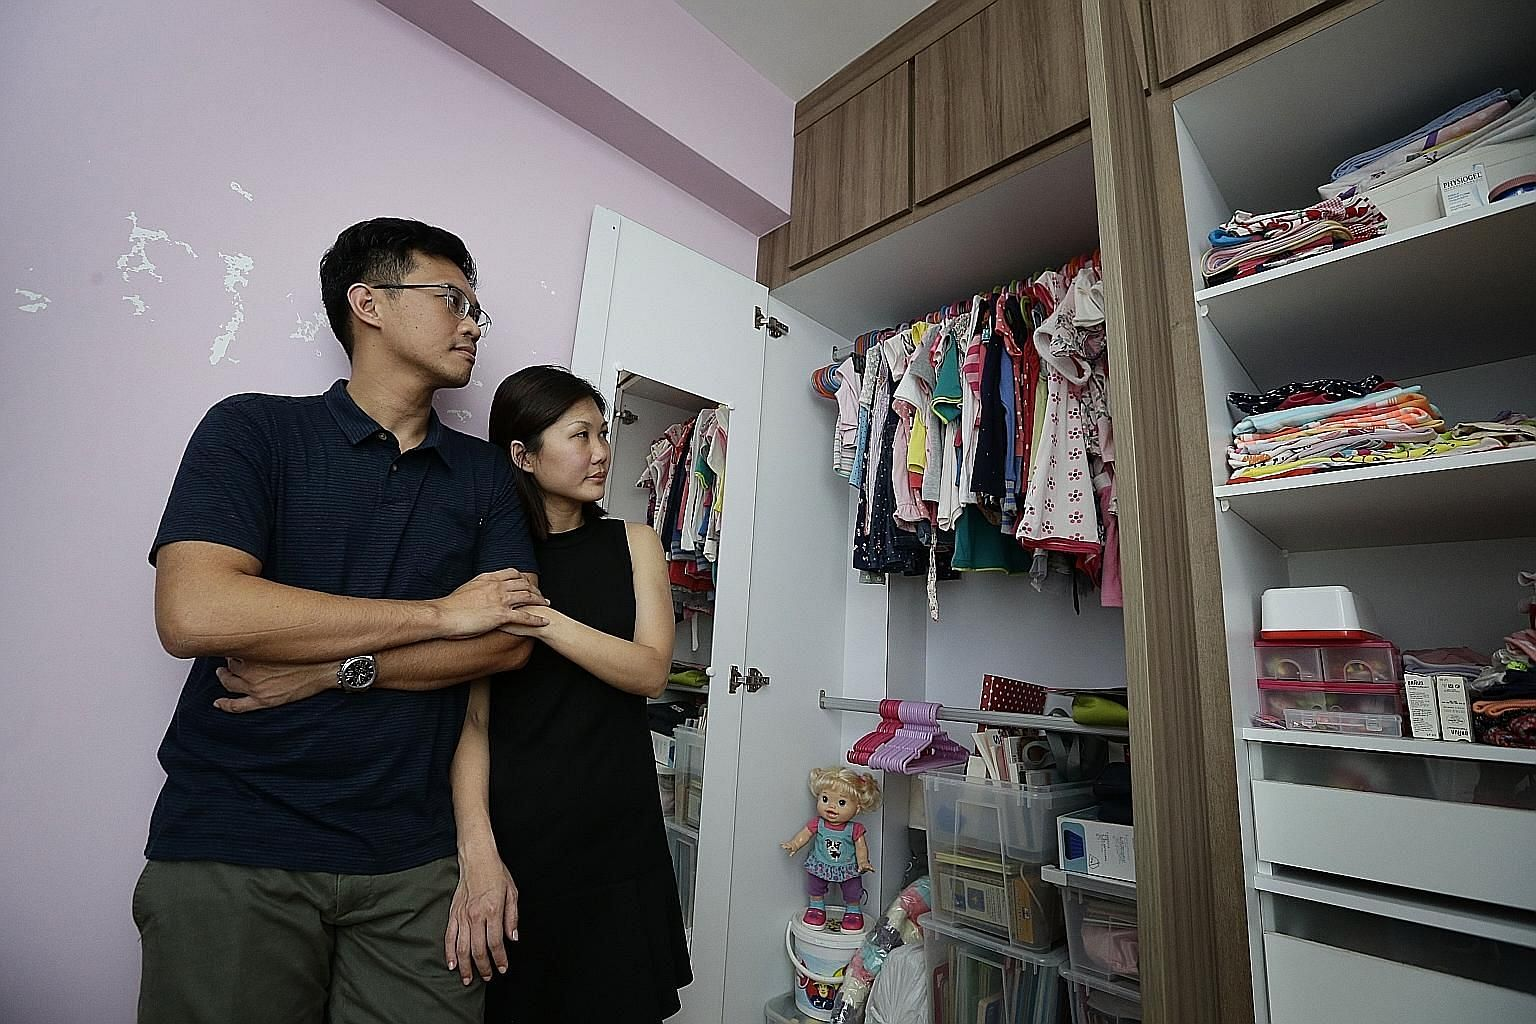 As Kaelyn's muscles wasted away, she could move only her arms. Mr Kelvin Chan and Ms Tay Shuhui with the clothes that belonged to their daughter Kaelyn, who died three years ago after her life support was withdrawn. Kaelyn was diagnosed with spinal m